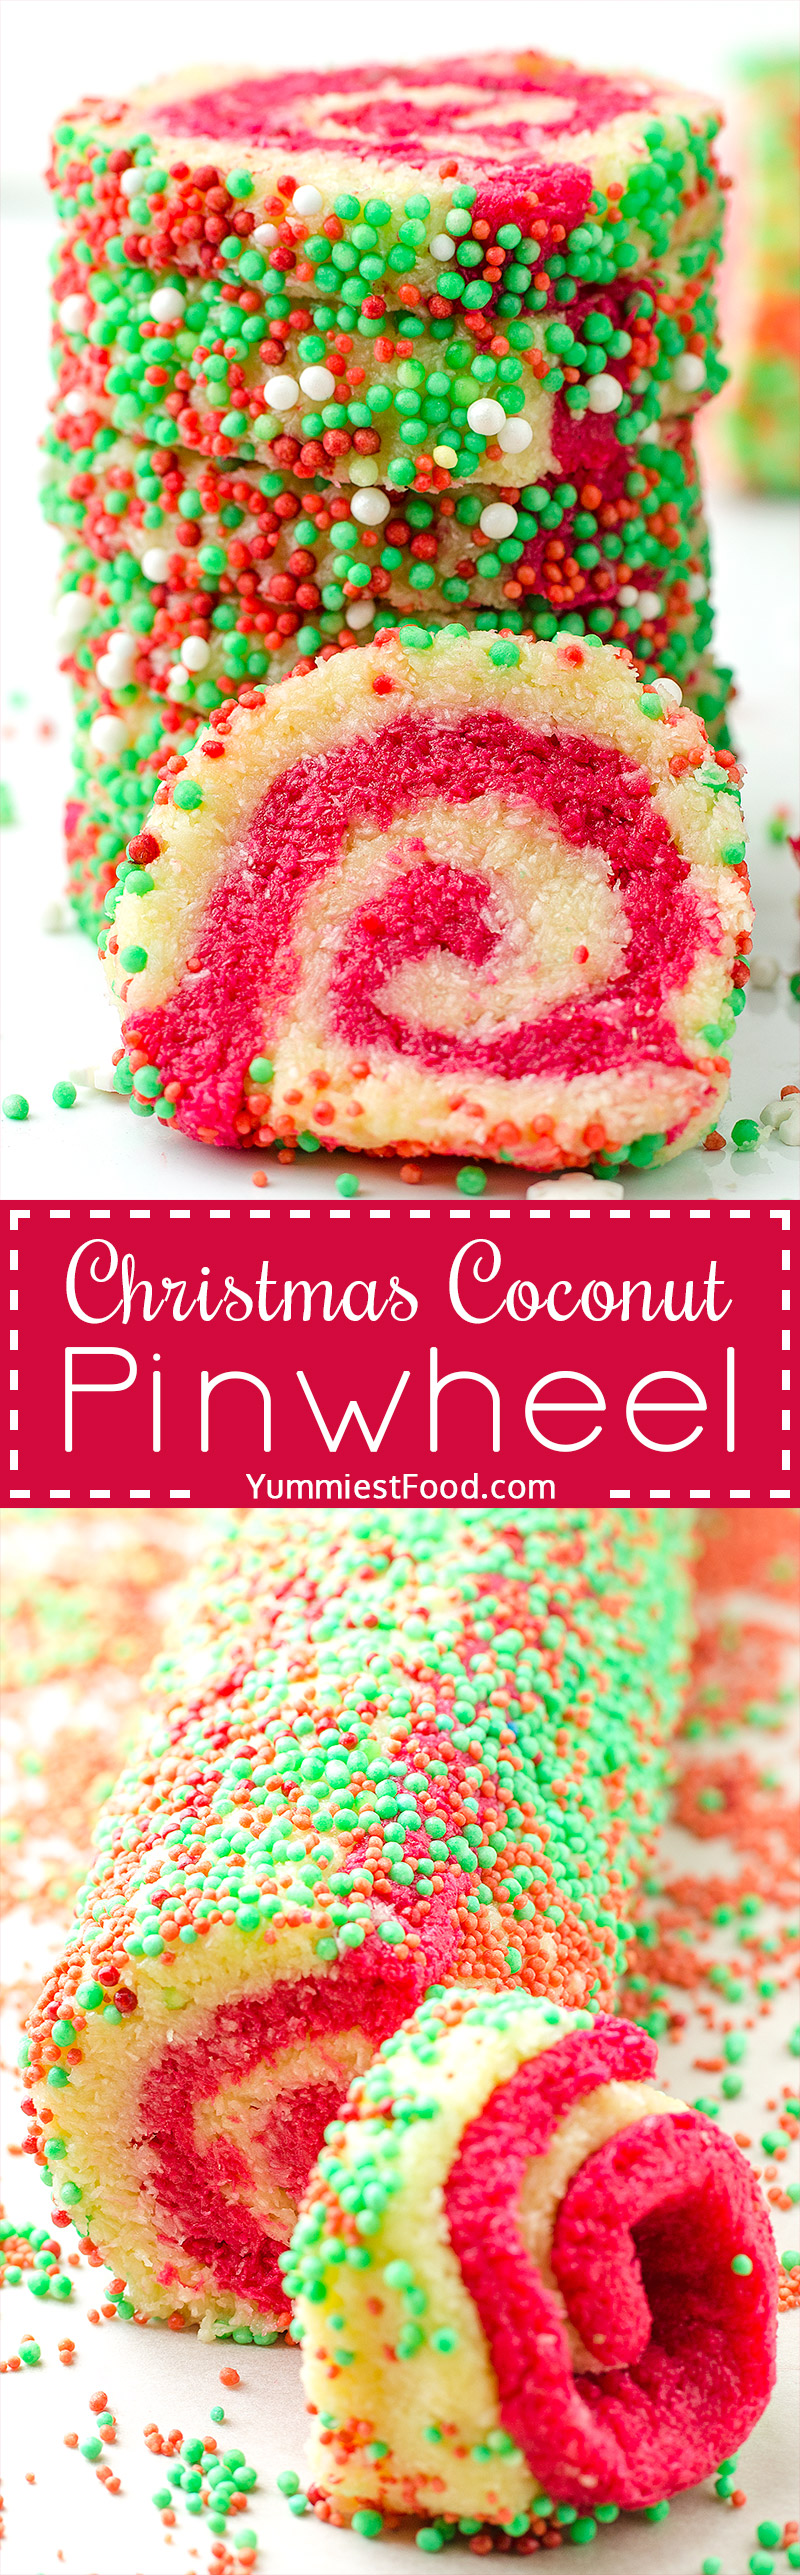 Christmas Coconut Pinwheel No Bake - a super cute and festive no bake dessert